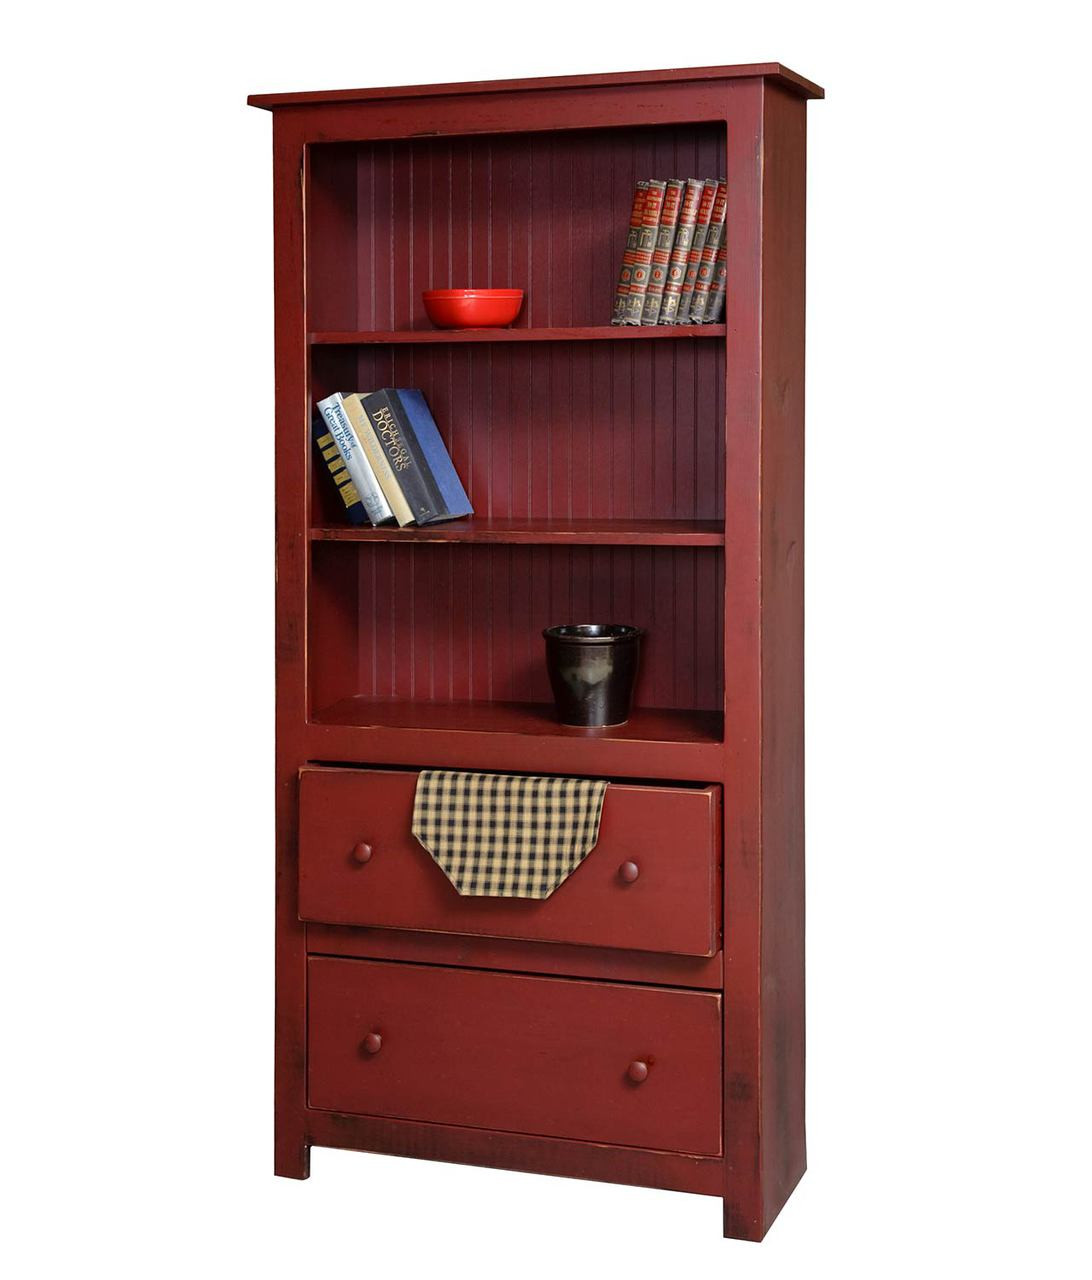 Bookcase 6 Foot With 2 Drawers Vintage Creations By Sam